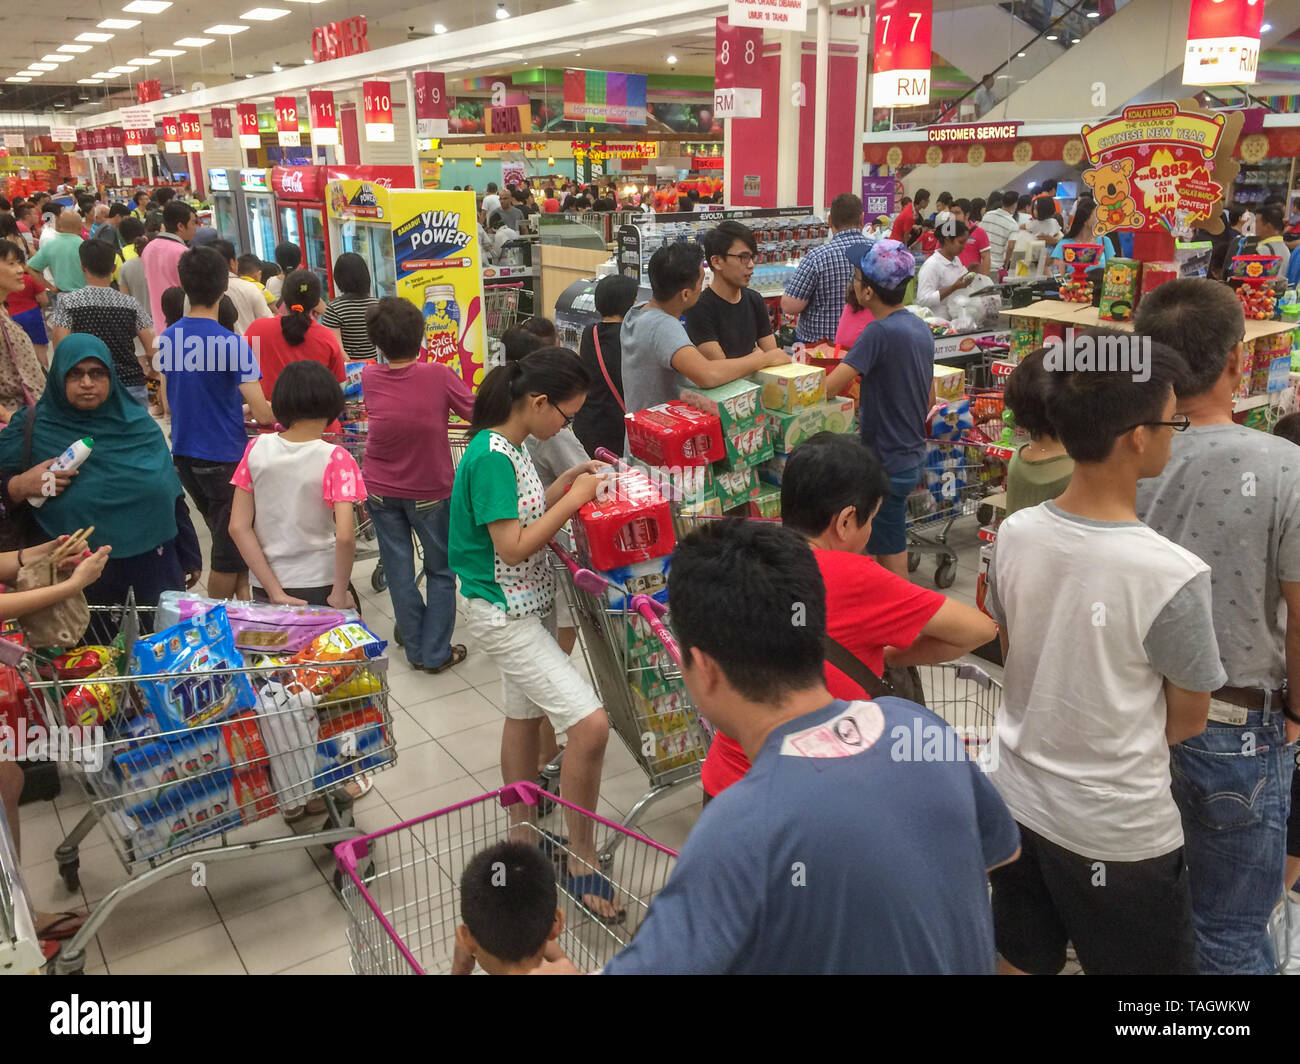 Shoppers queueing at supermarket checkouts for Chinese New Year celebrations - Stock Image